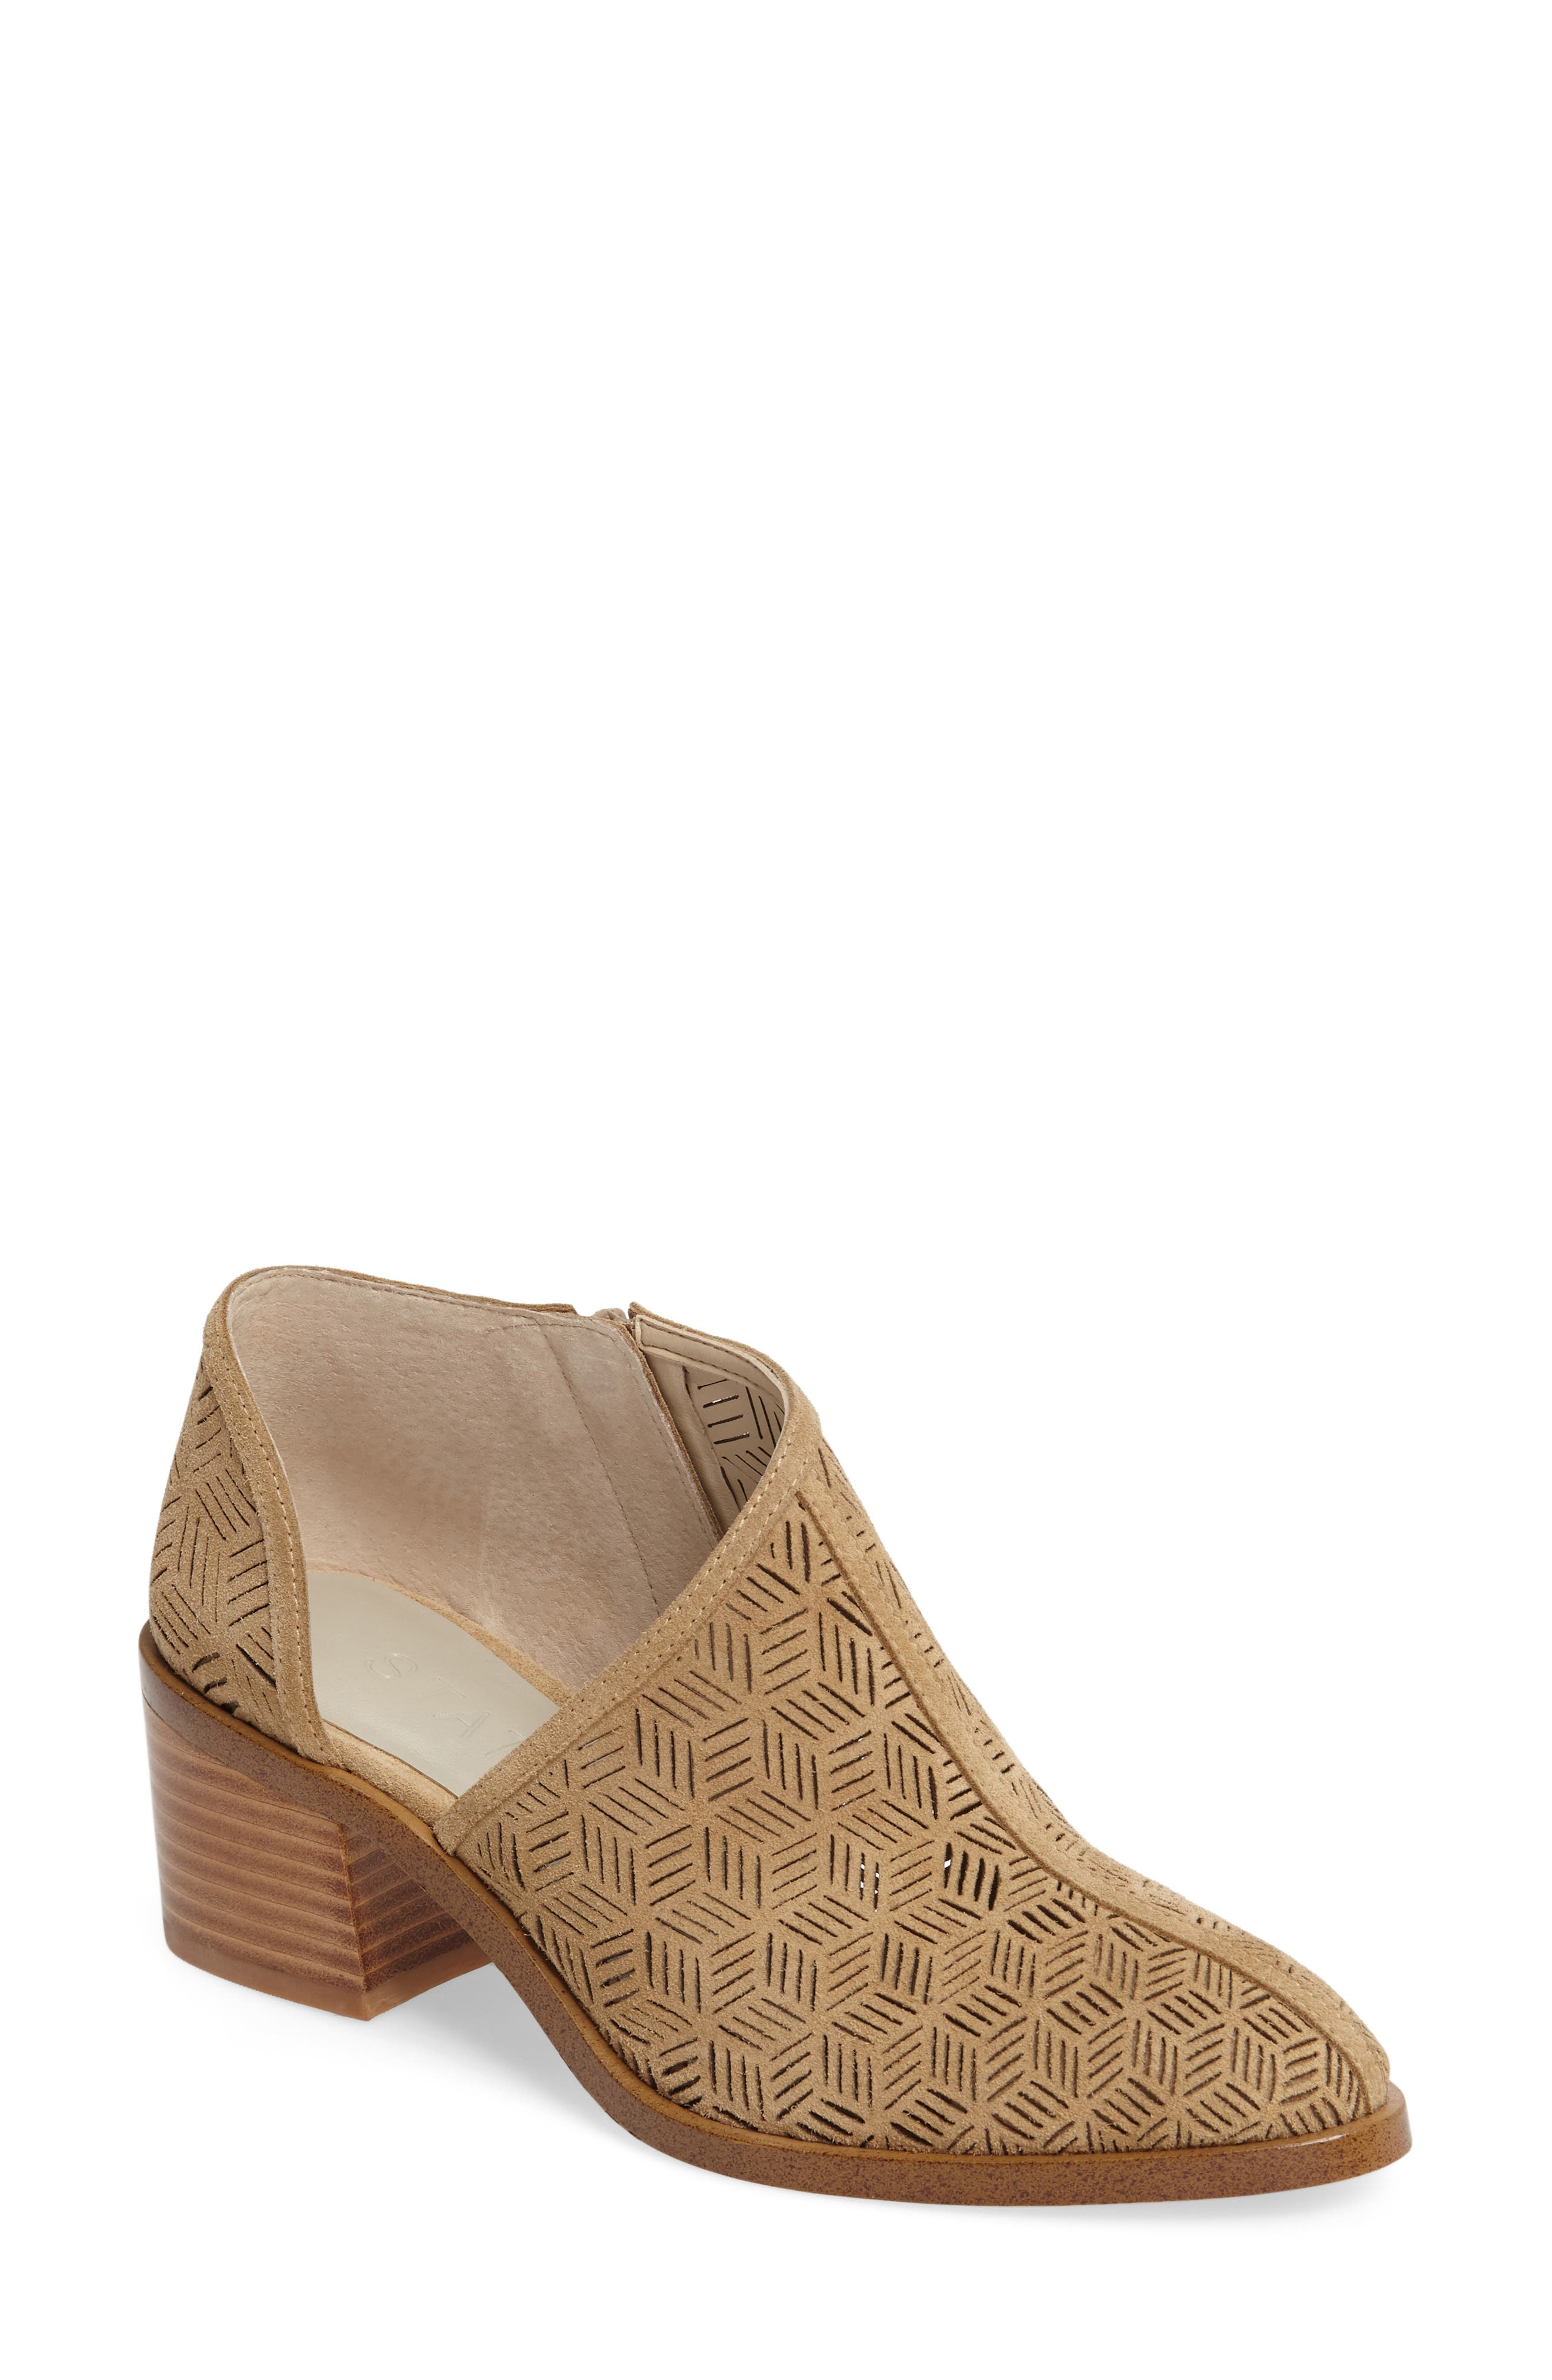 Alternate Image 1 Selected - 1.STATE Iddah Perforated Cutaway Bootie (Women)